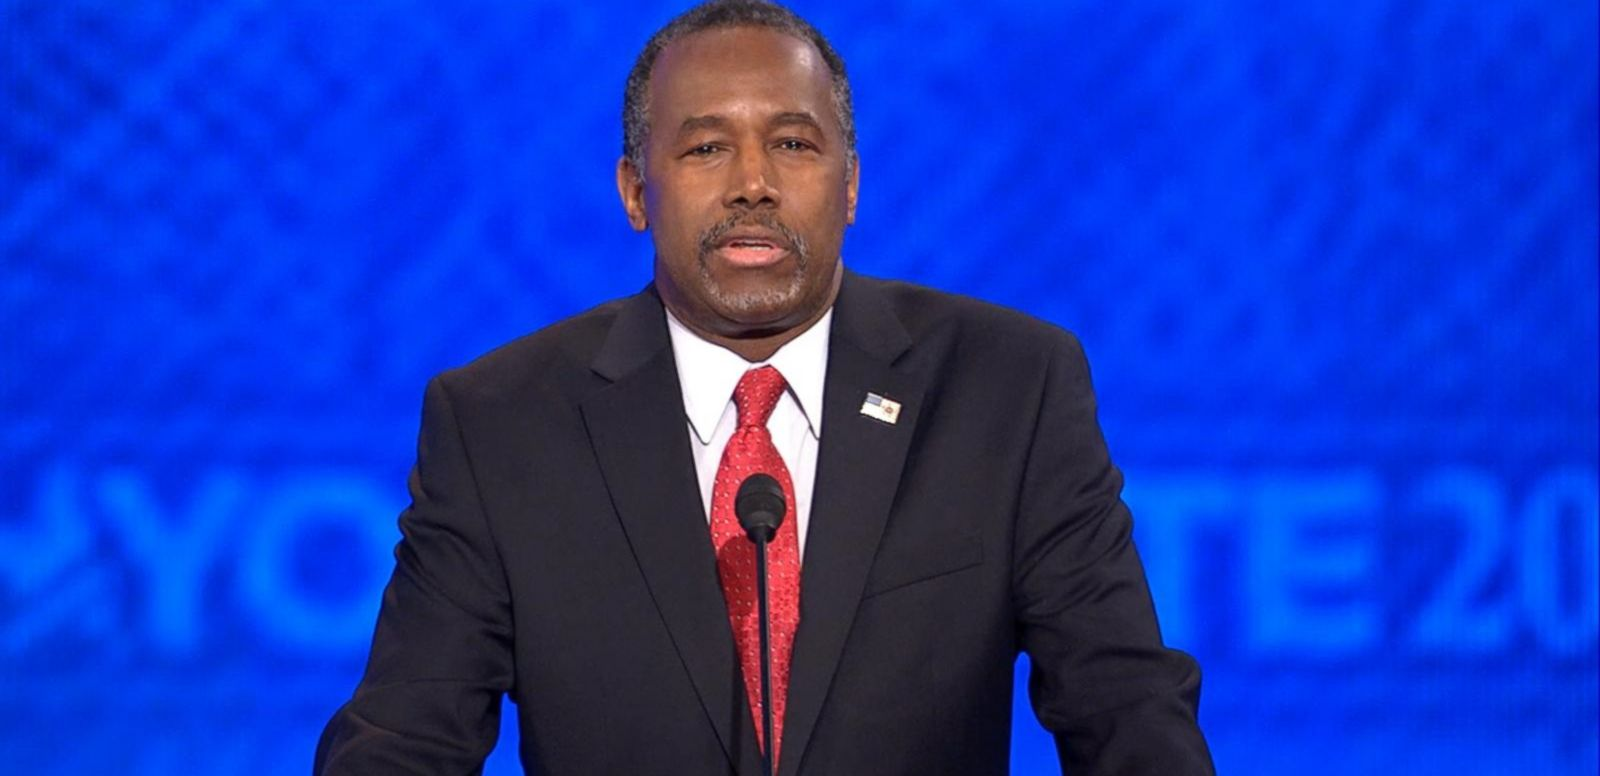 VIDEO: Ben Carson Tells America 'I'm Still Here' at GOP Debate